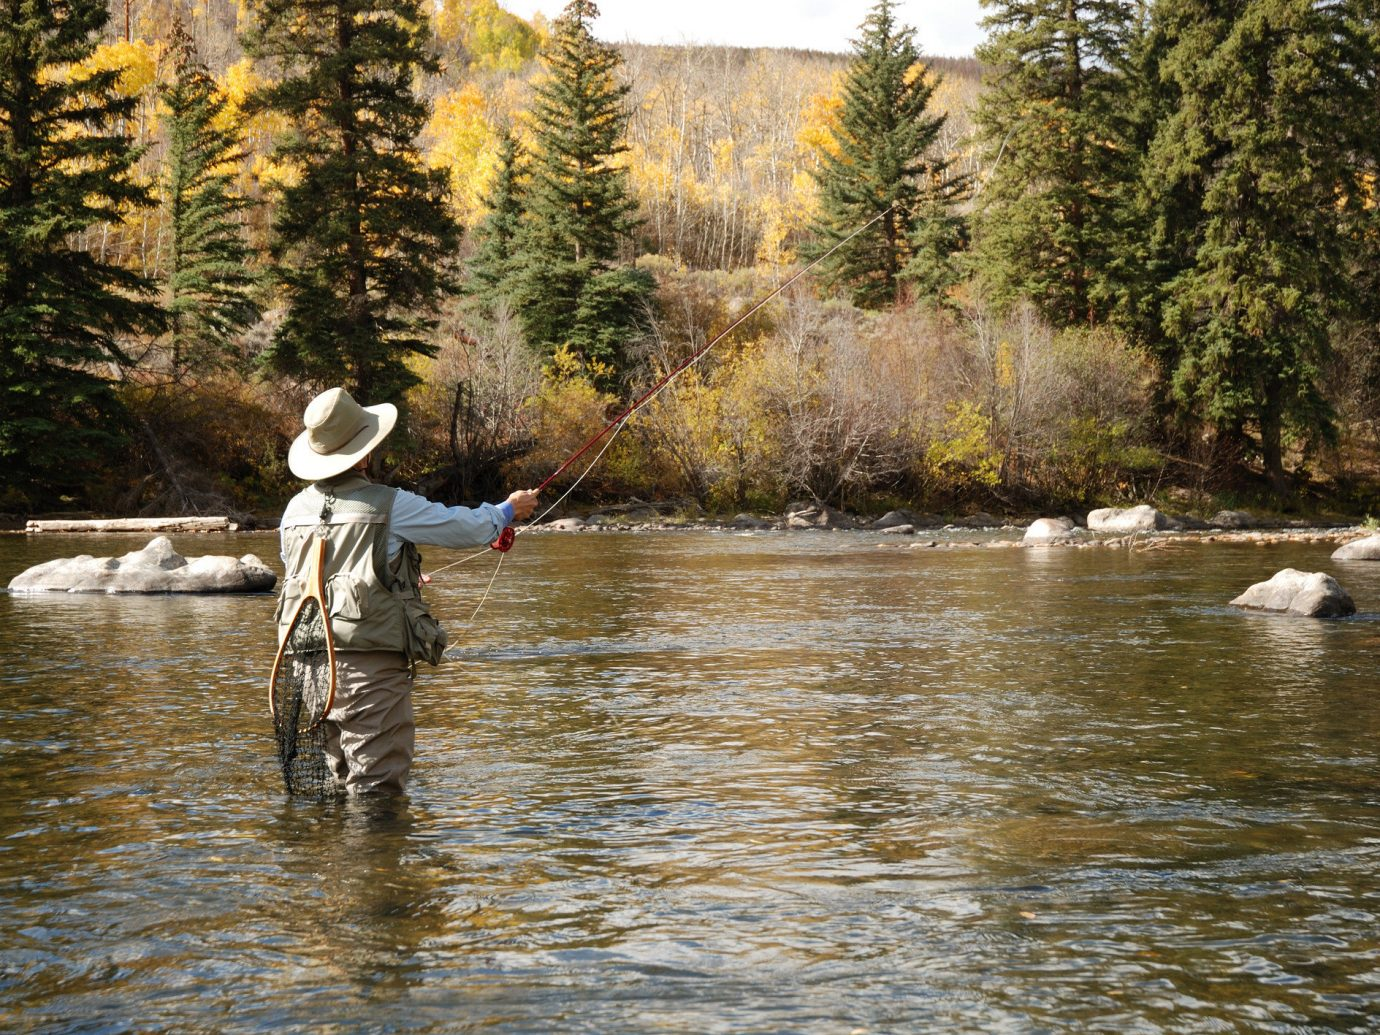 Mountains + Skiing Outdoors + Adventure tree outdoor water River recreational fishing stream Sport watercourse creek fly fishing bank water resources recreation Lake plant fishing landscape